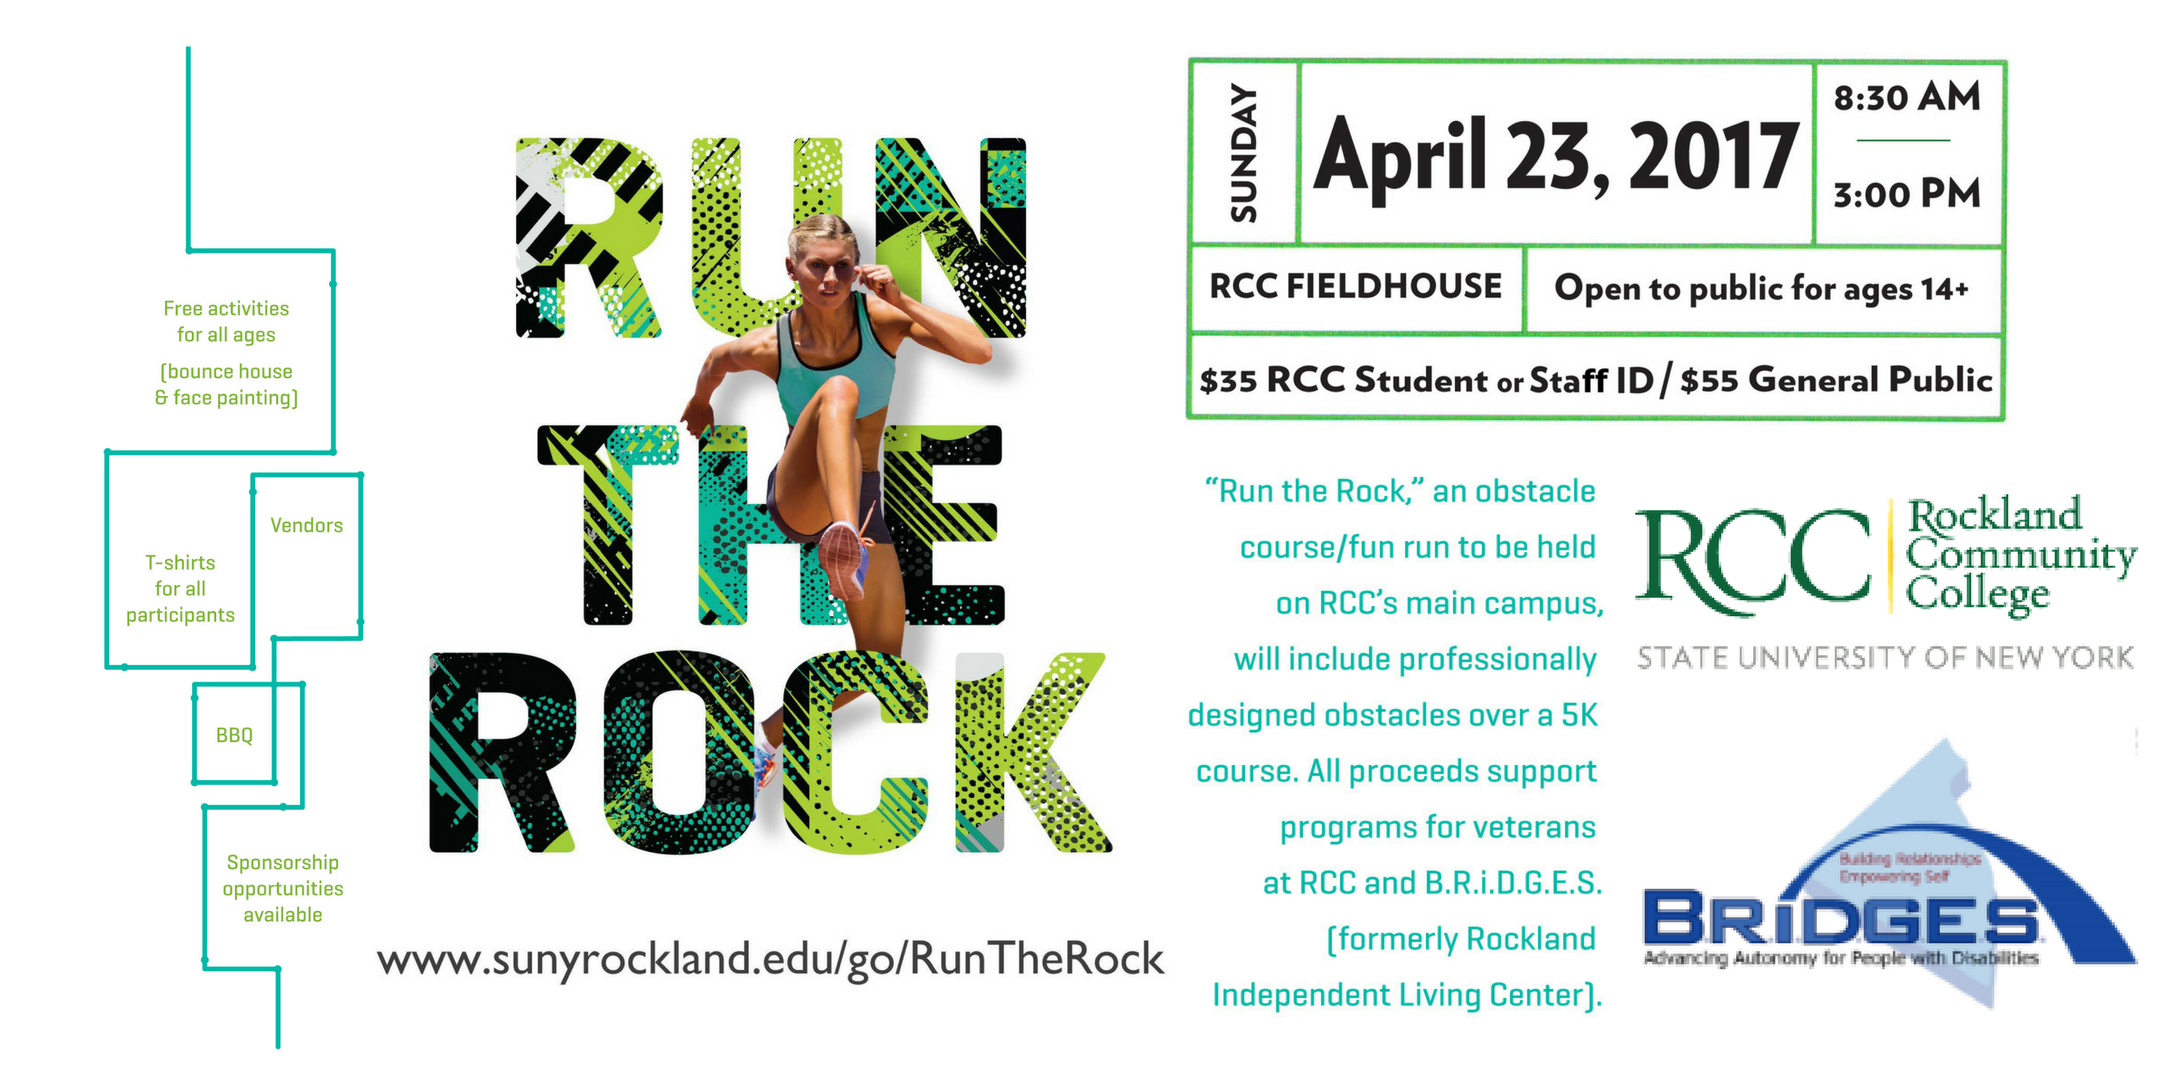 Run the Rock - Obstacle Course in Support of